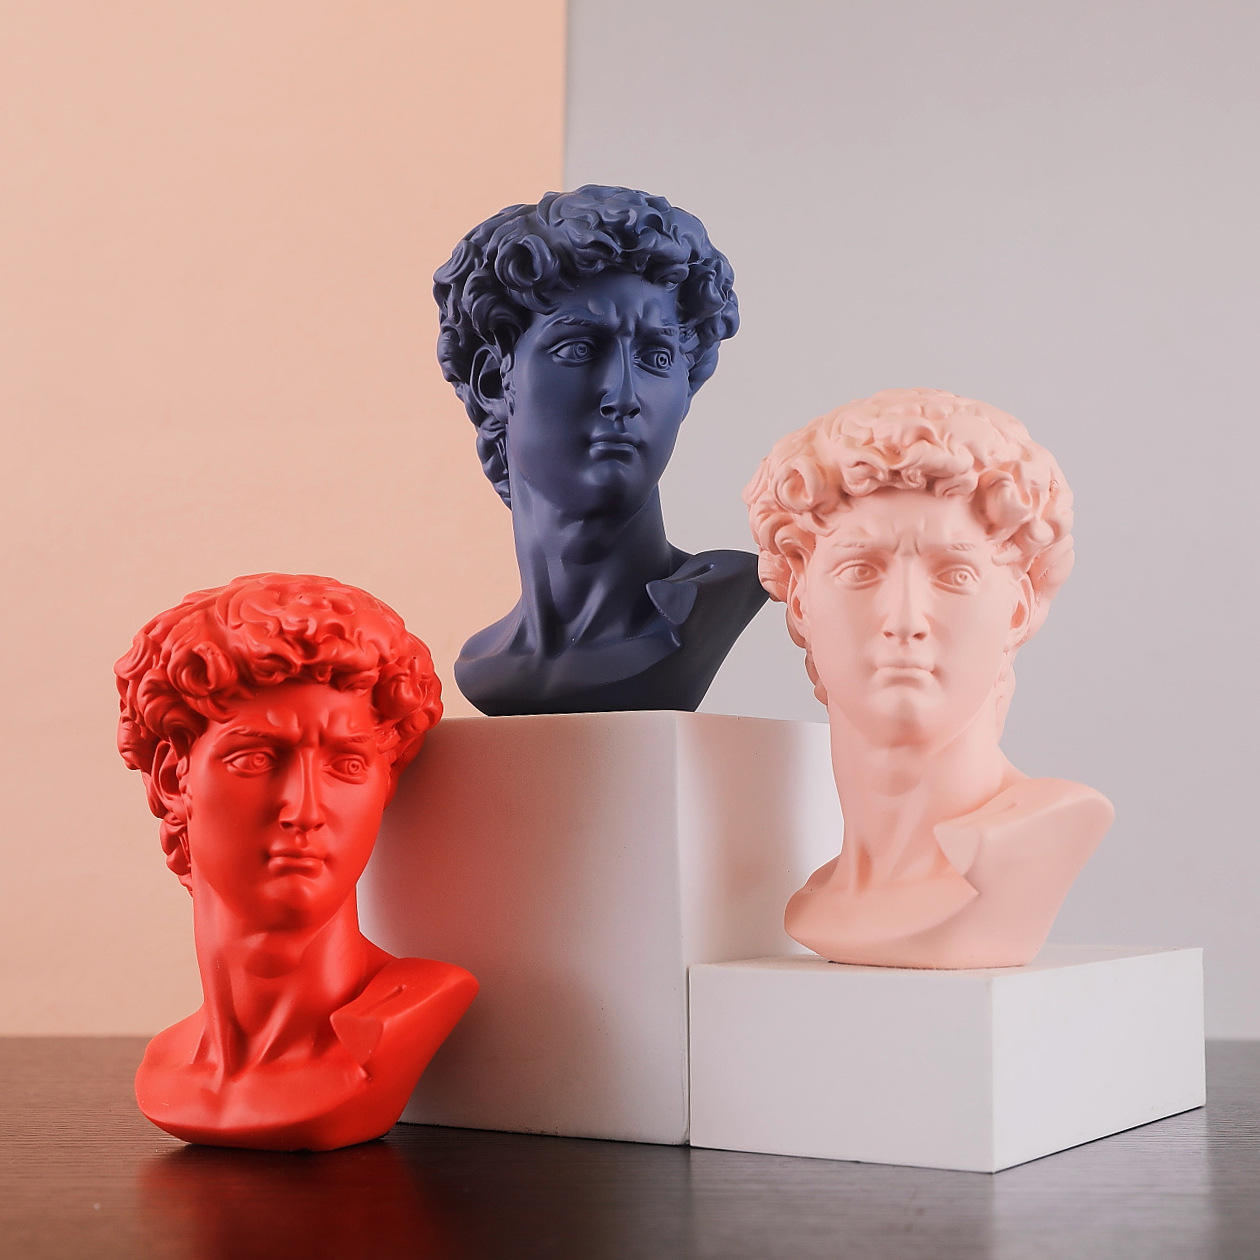 Dropship David Statue Bust Head Sculpture Cheap Red Blue White Resin The David Bust